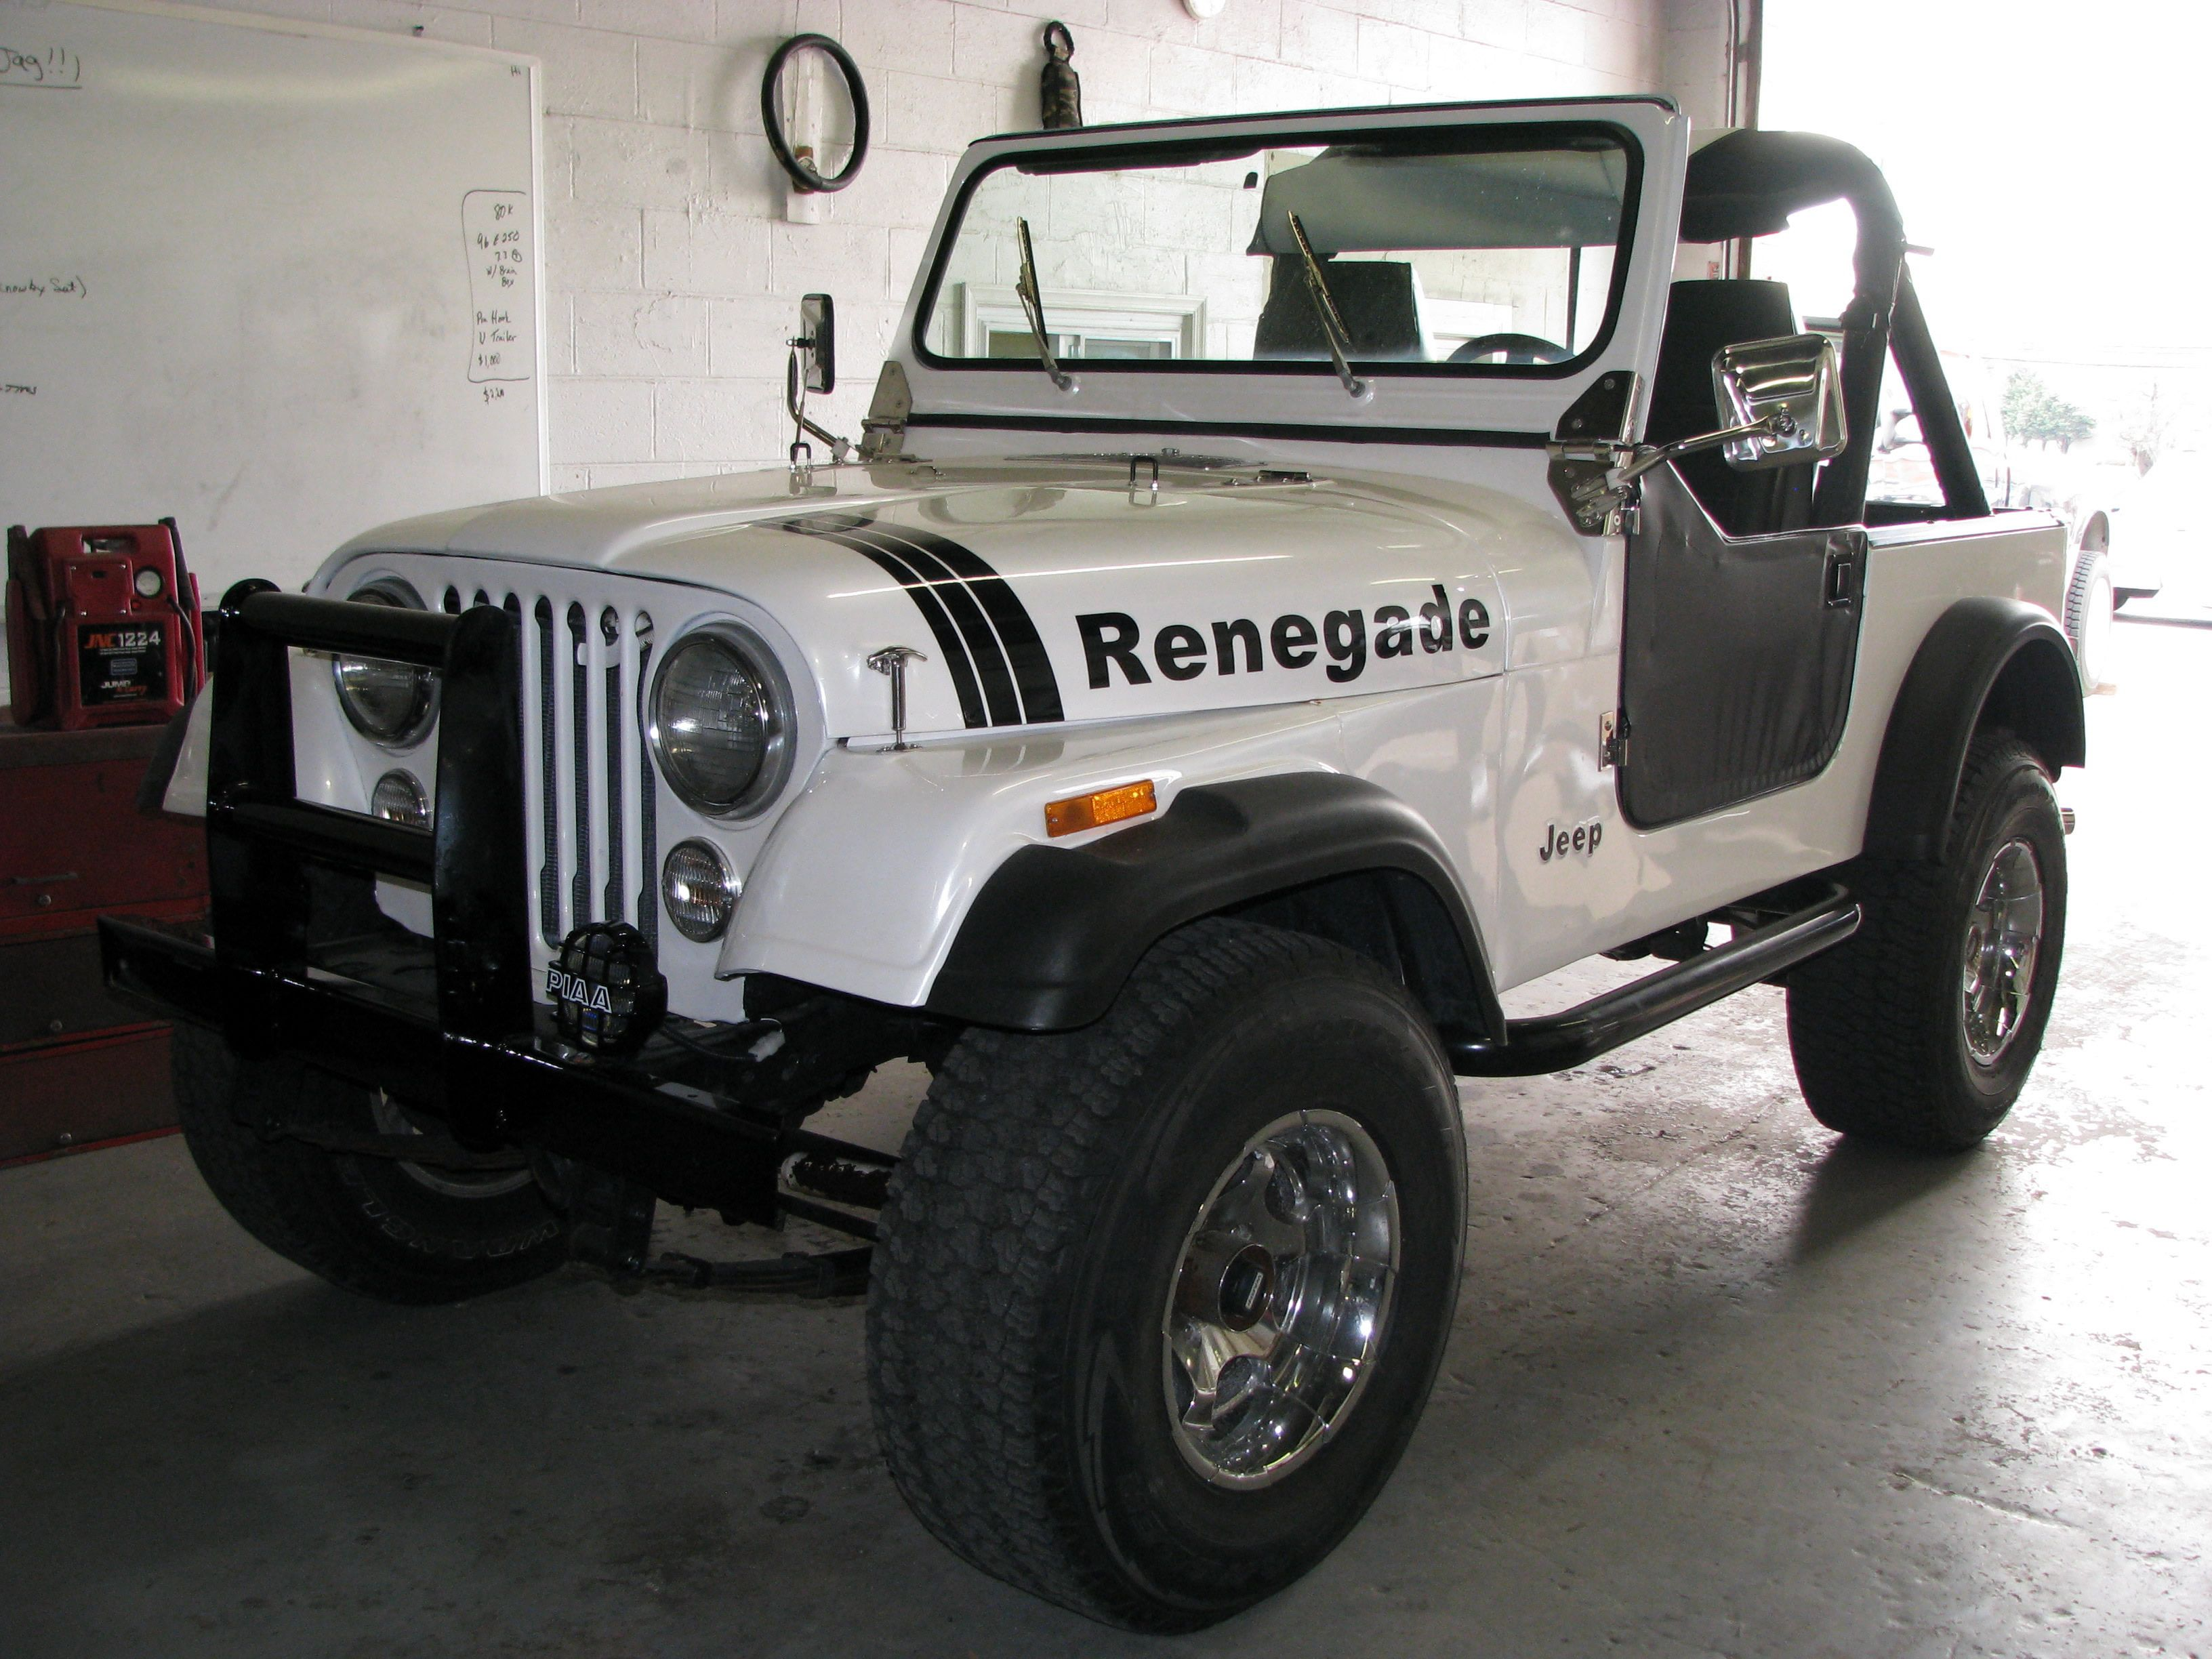 Customer S Jeep Renegade Jeep Jeep Cj Jeep Cars